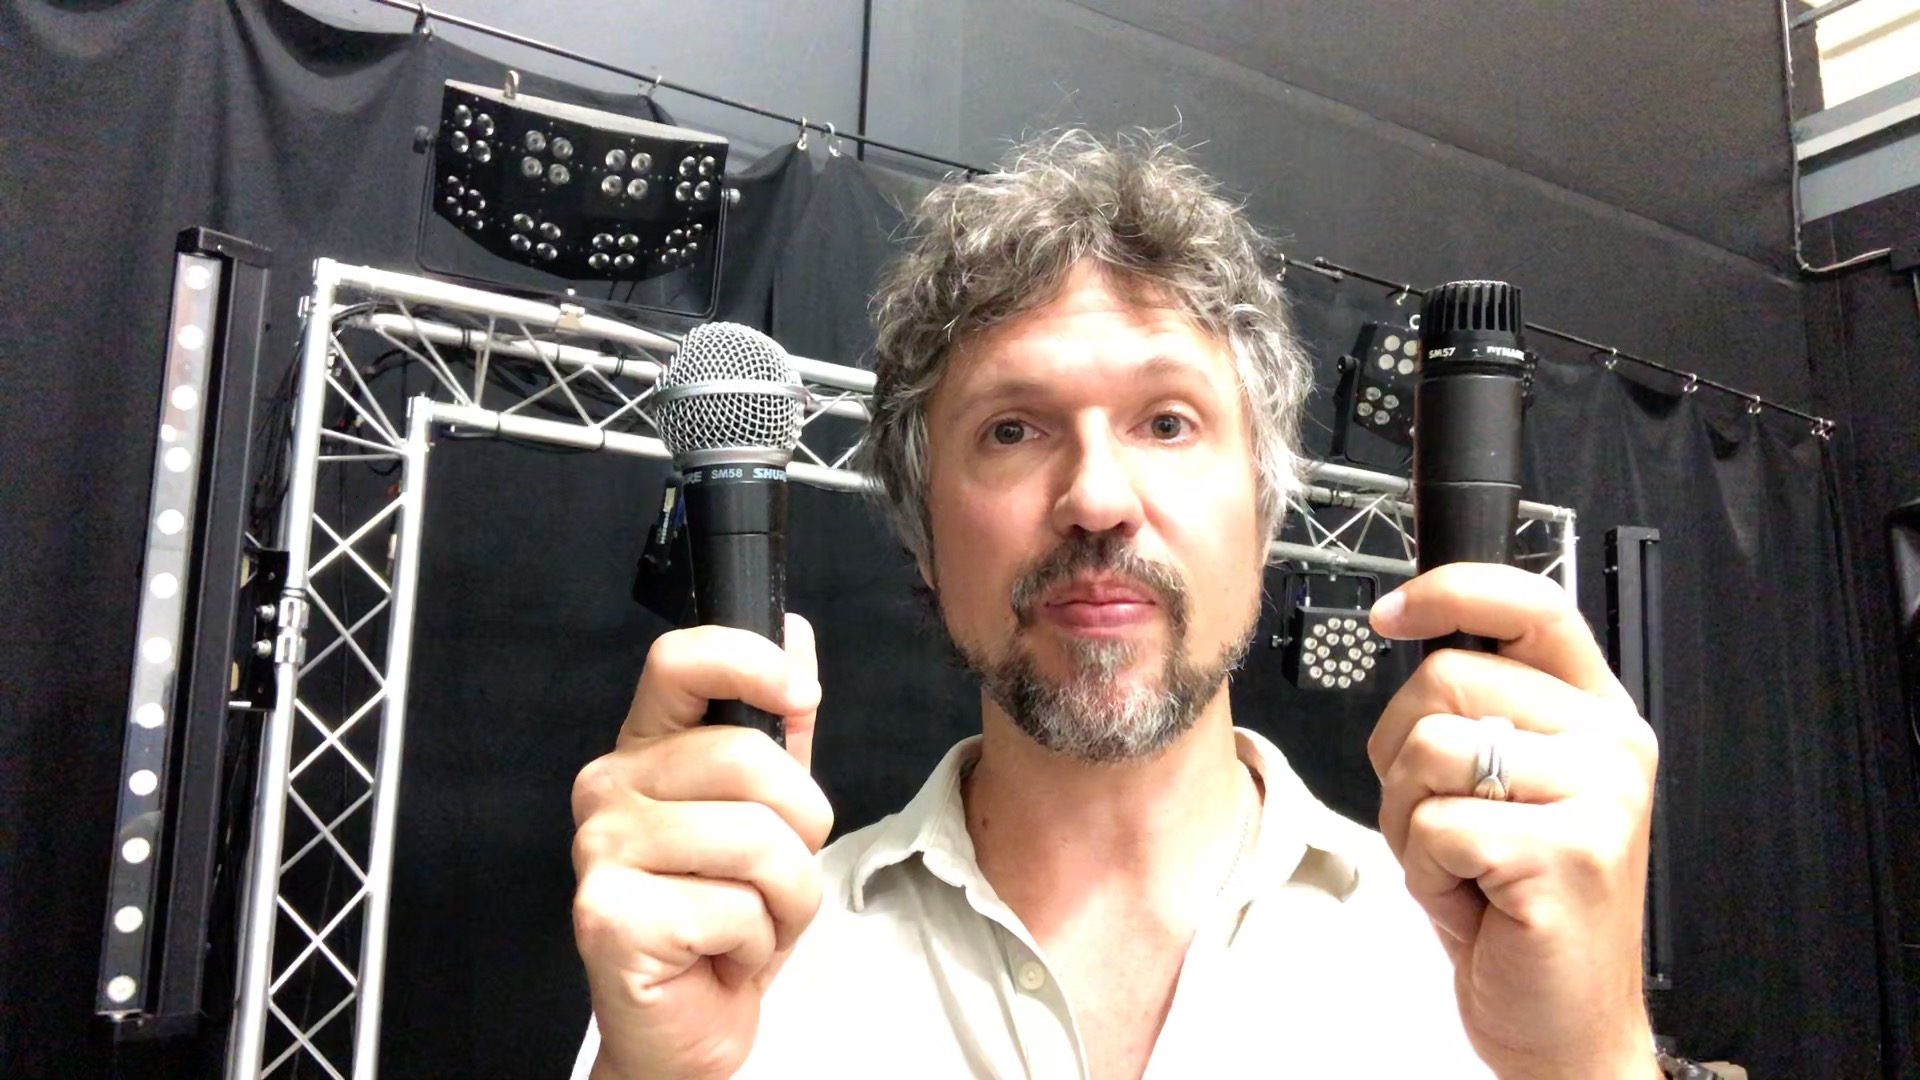 Taylor Sound Tip of the Day – What are the differences between a Shure SM57 and an SM58?